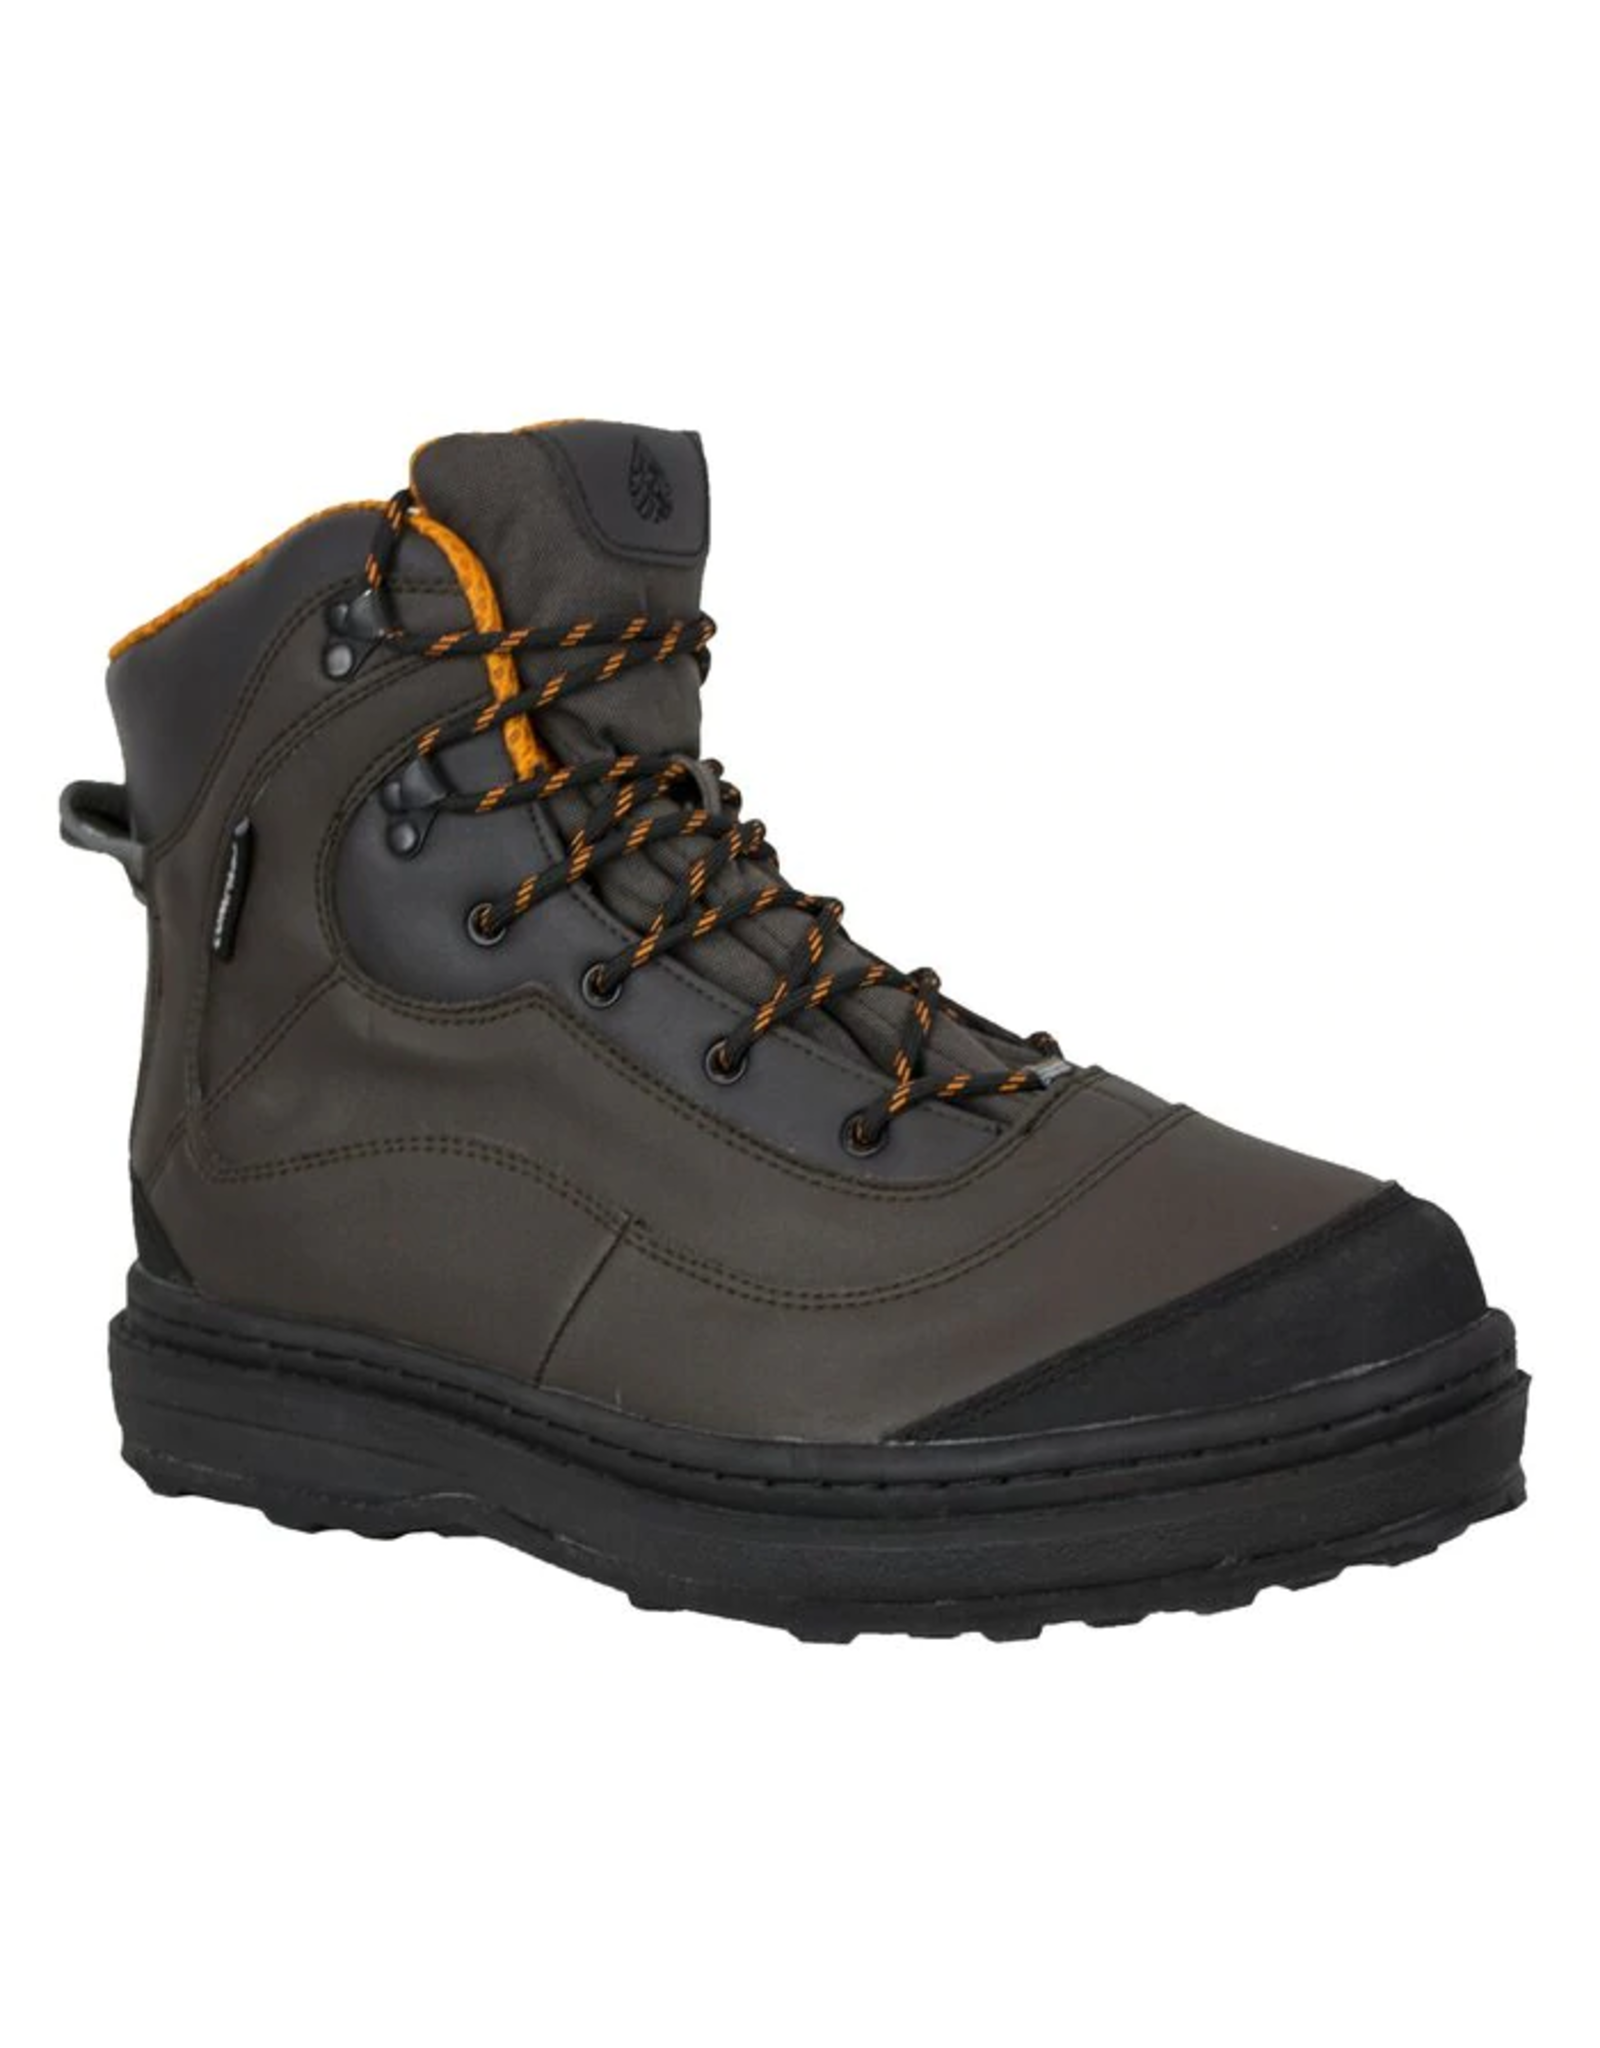 Compass 360 Compass 360 Tailwater II Cleated Sole Wading Boots